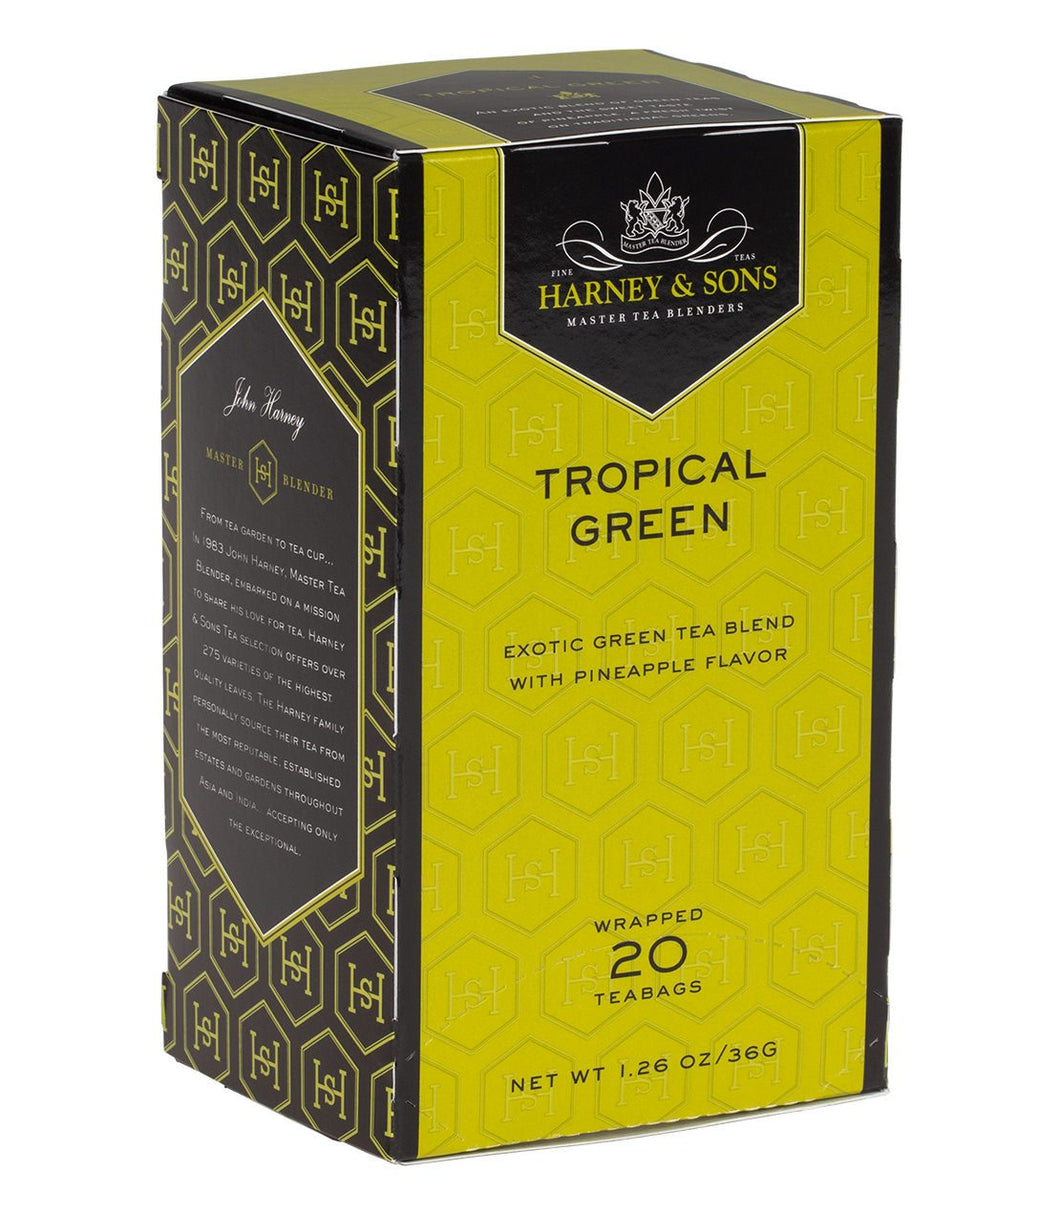 Tropical Green Premium Teabags